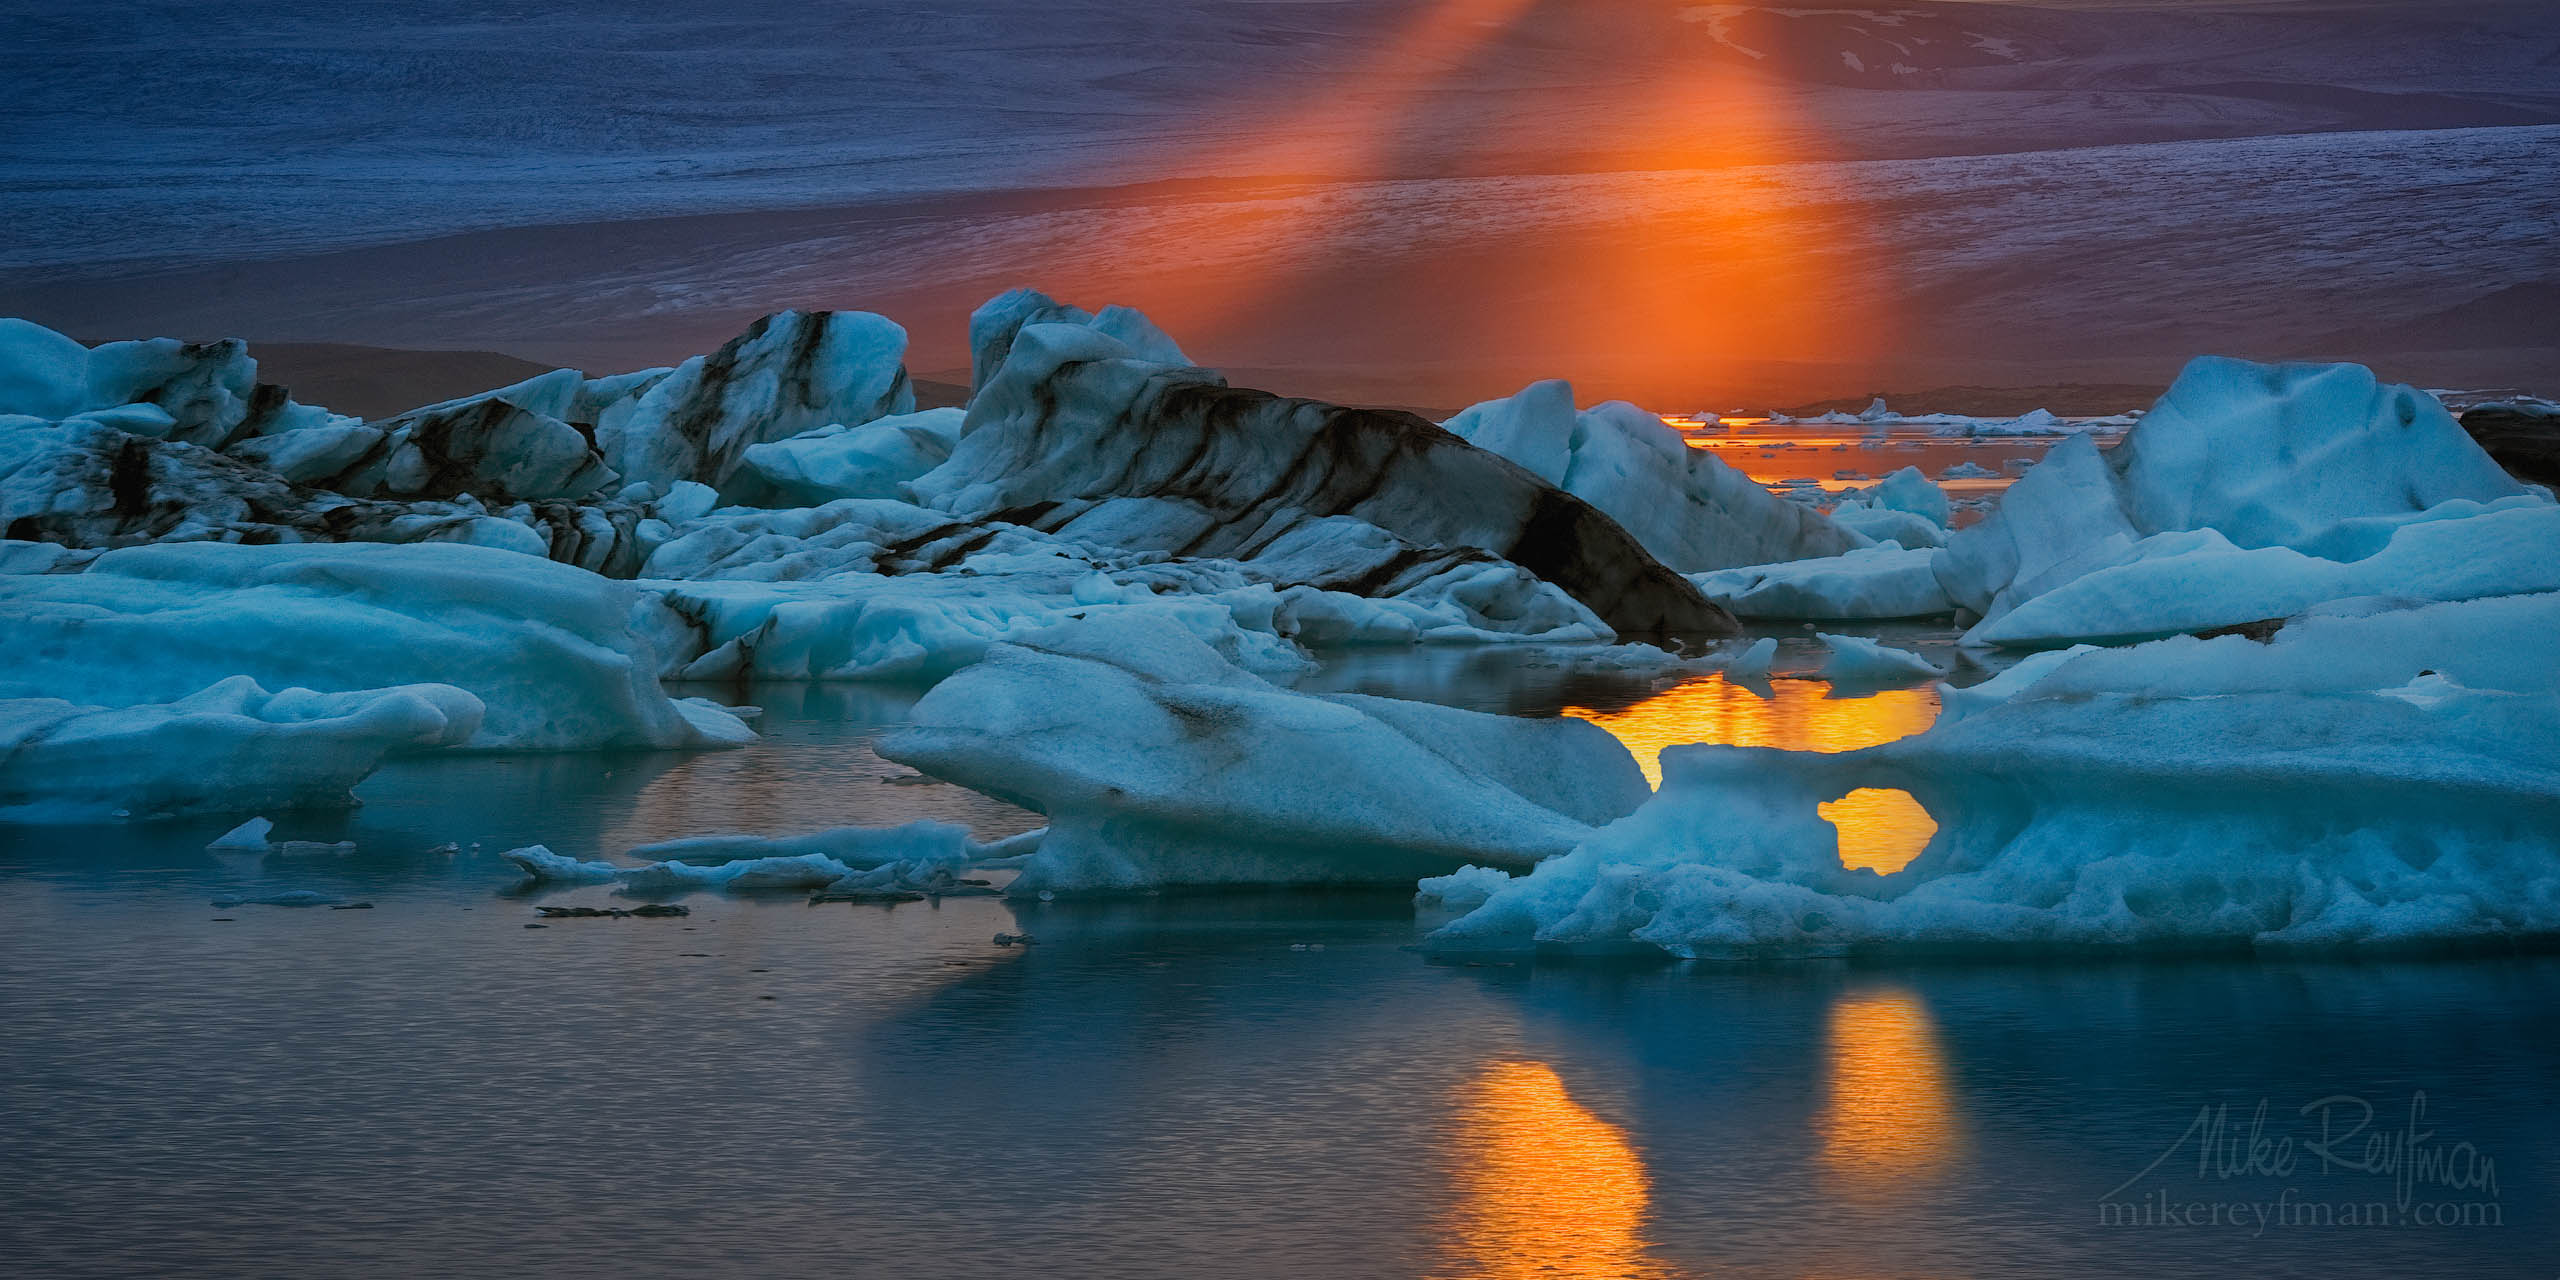 Last Ray. Jokulsarlon Glacial Lagoon, Iceland. P12-MRMR27880 - Selected panoramic images with 2:1 aspect ratio - Mike Reyfman Photography